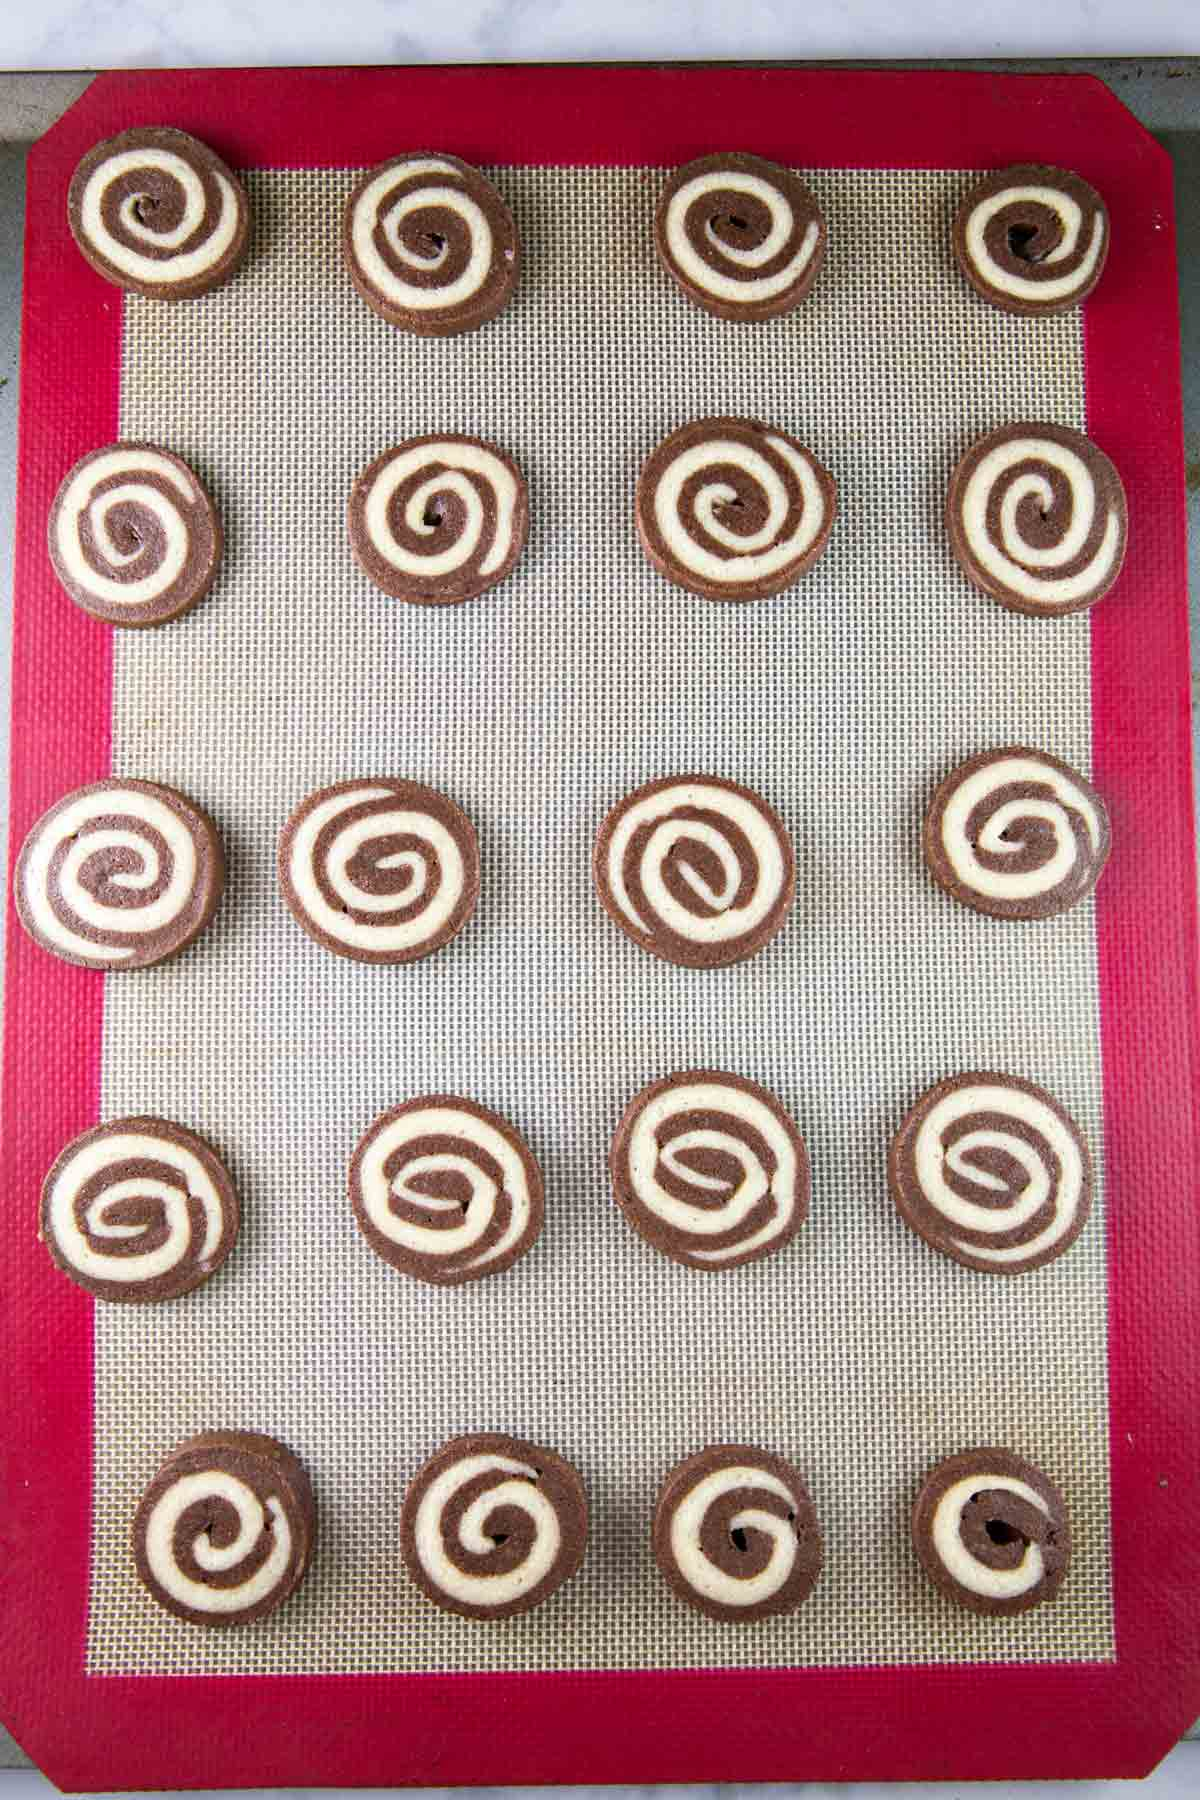 chocolate pinwheel cookies arranged in rows on a baking sheet